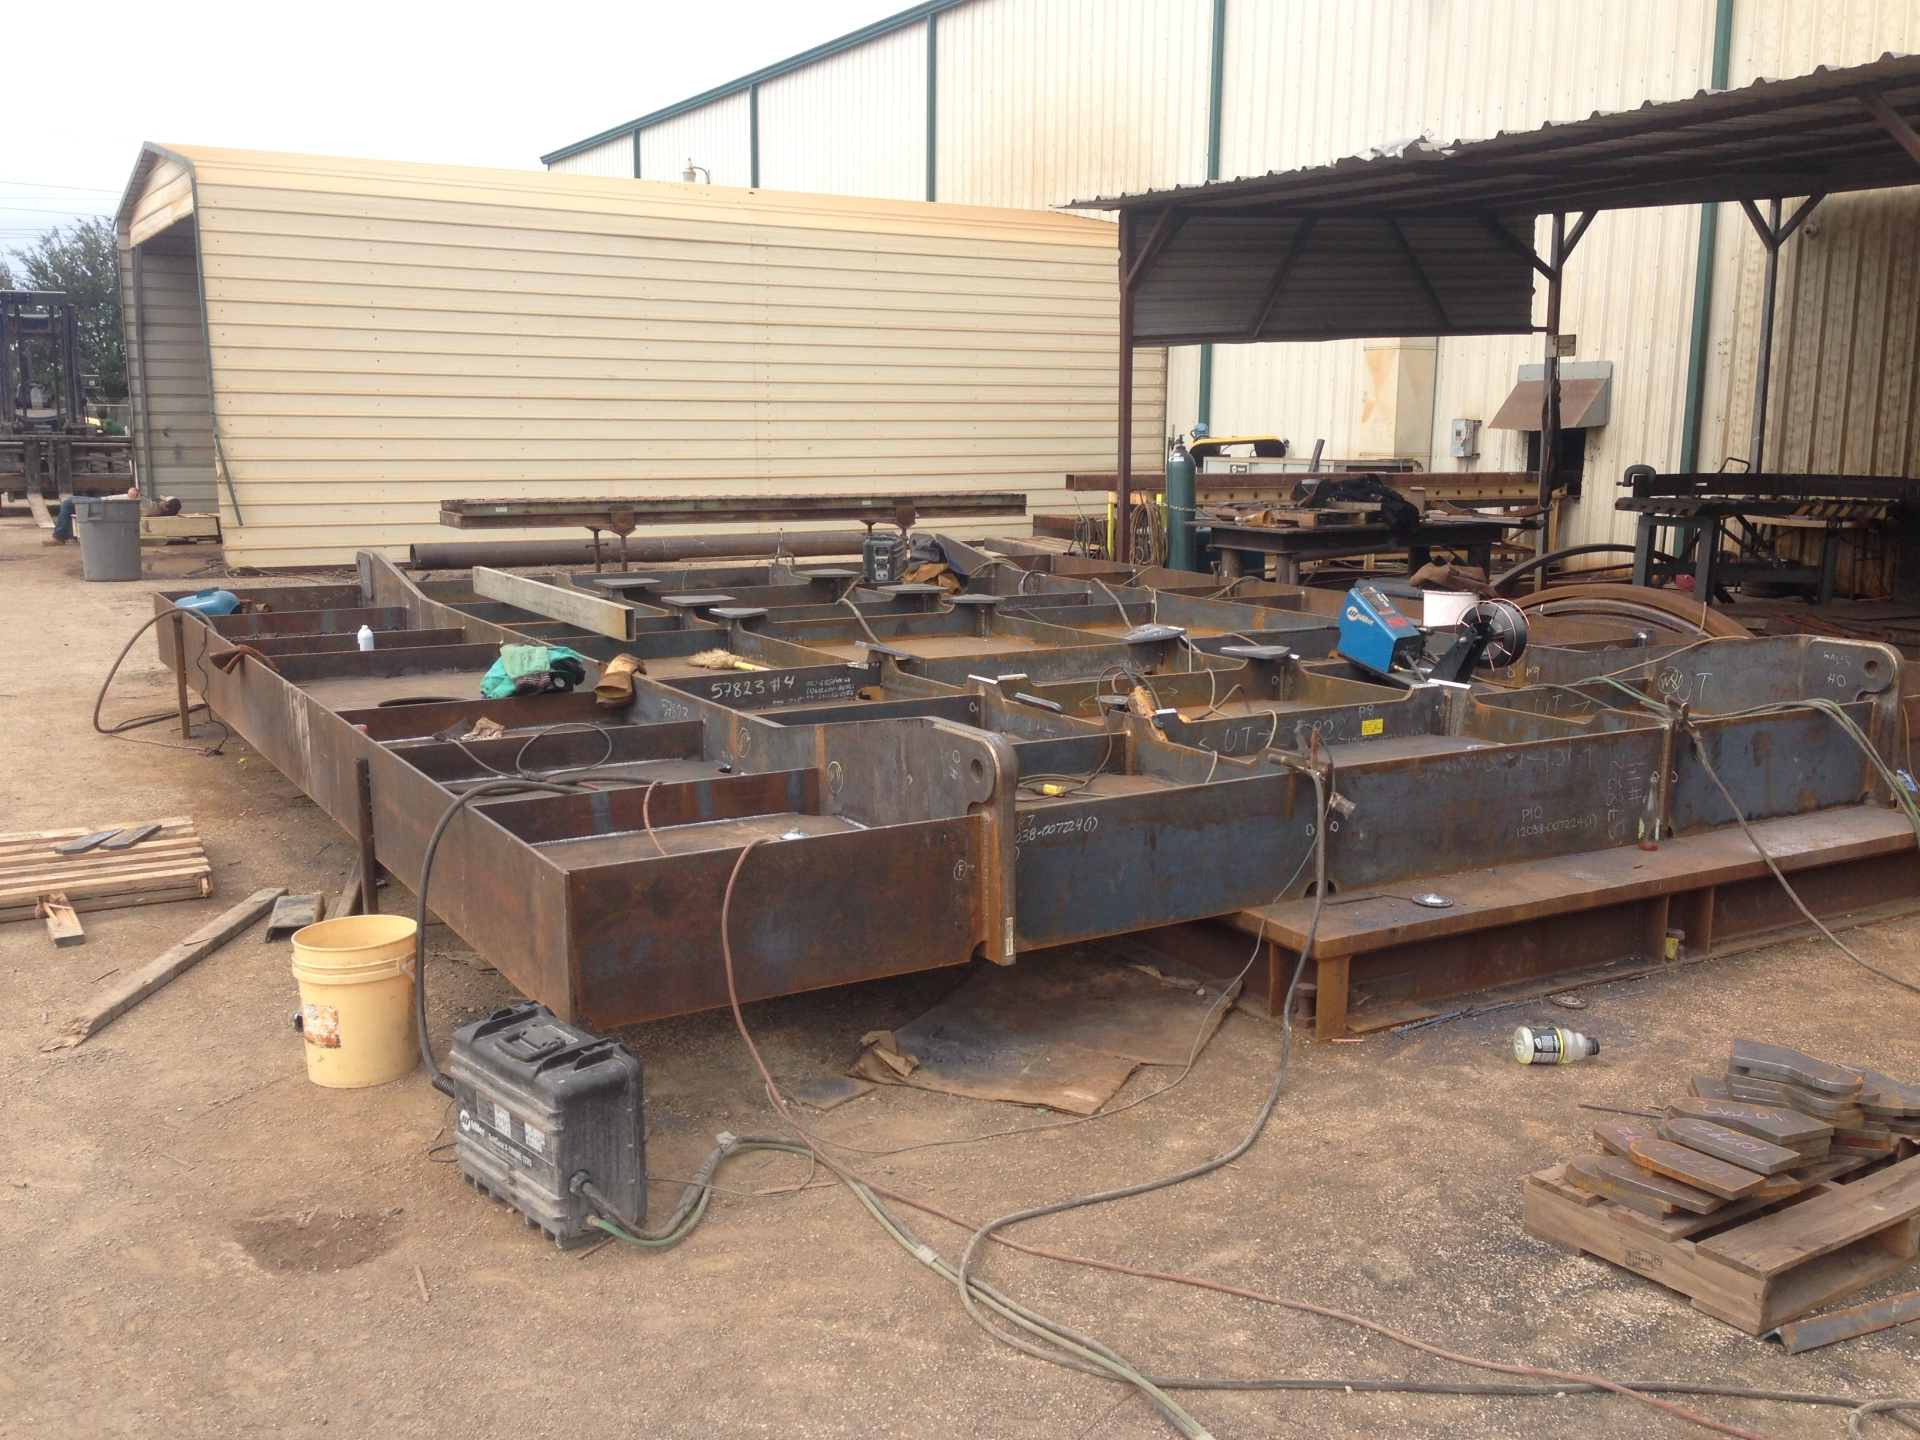 Mud, Mat, Fabrication, Welding, Manufacturing, Manufacture, Umbilical, Table,